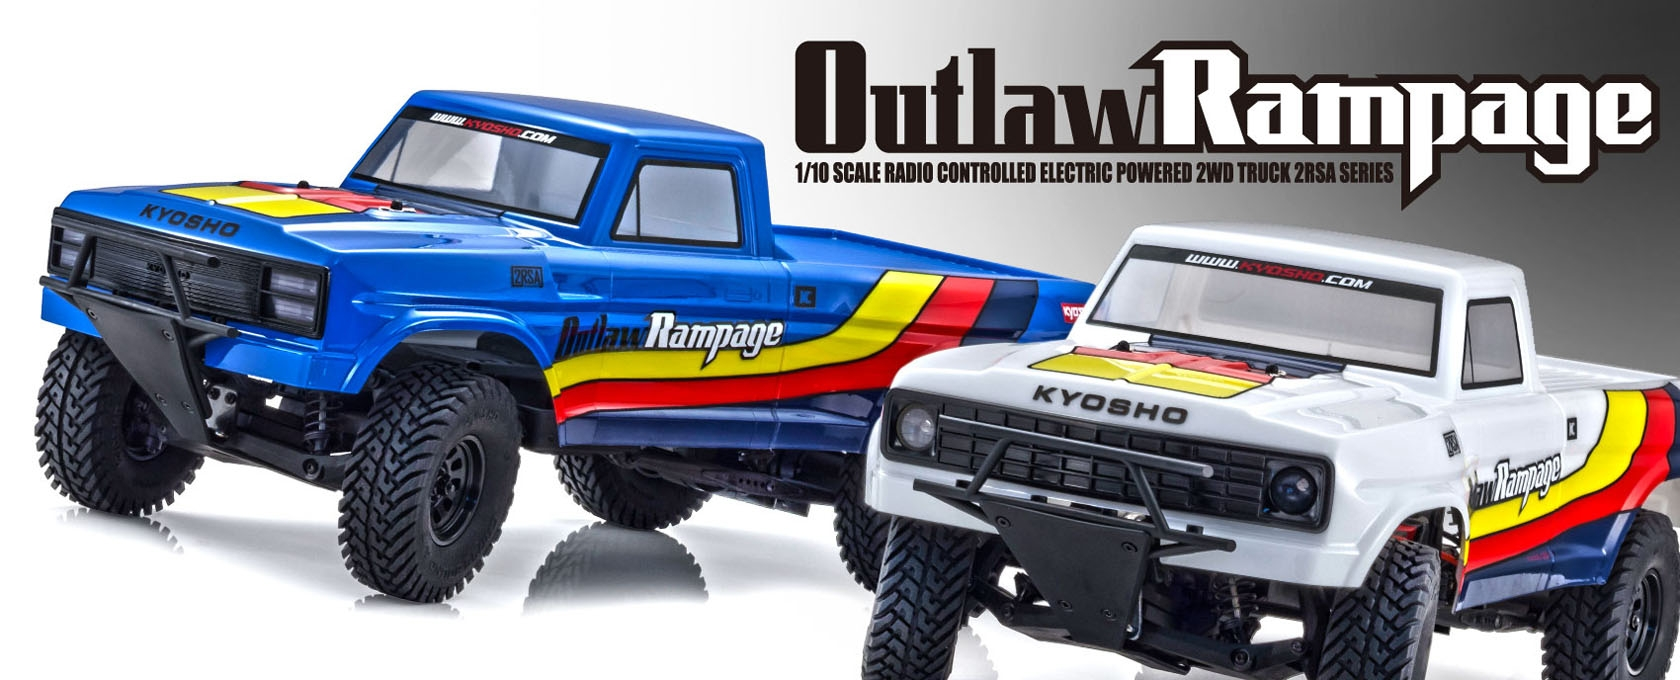 outlaw-rampage